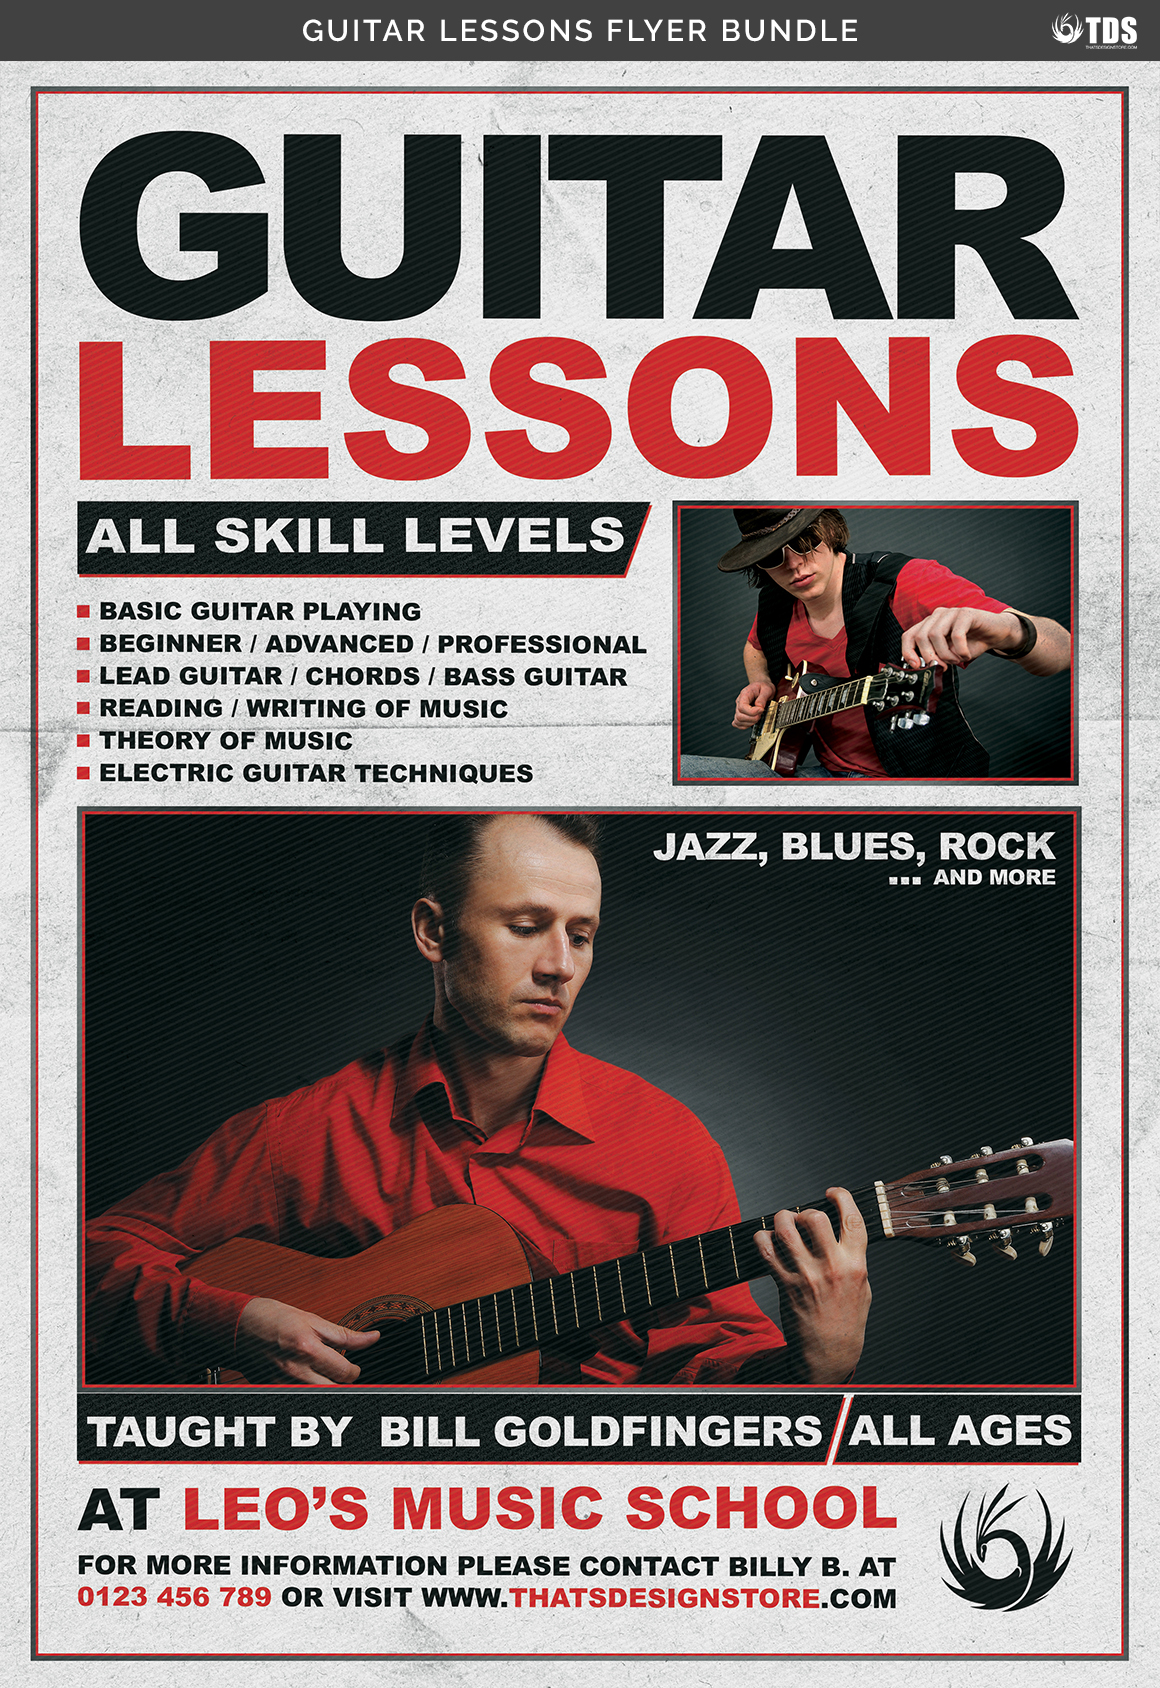 Guitar Lessons Flyer Bundle example image 11